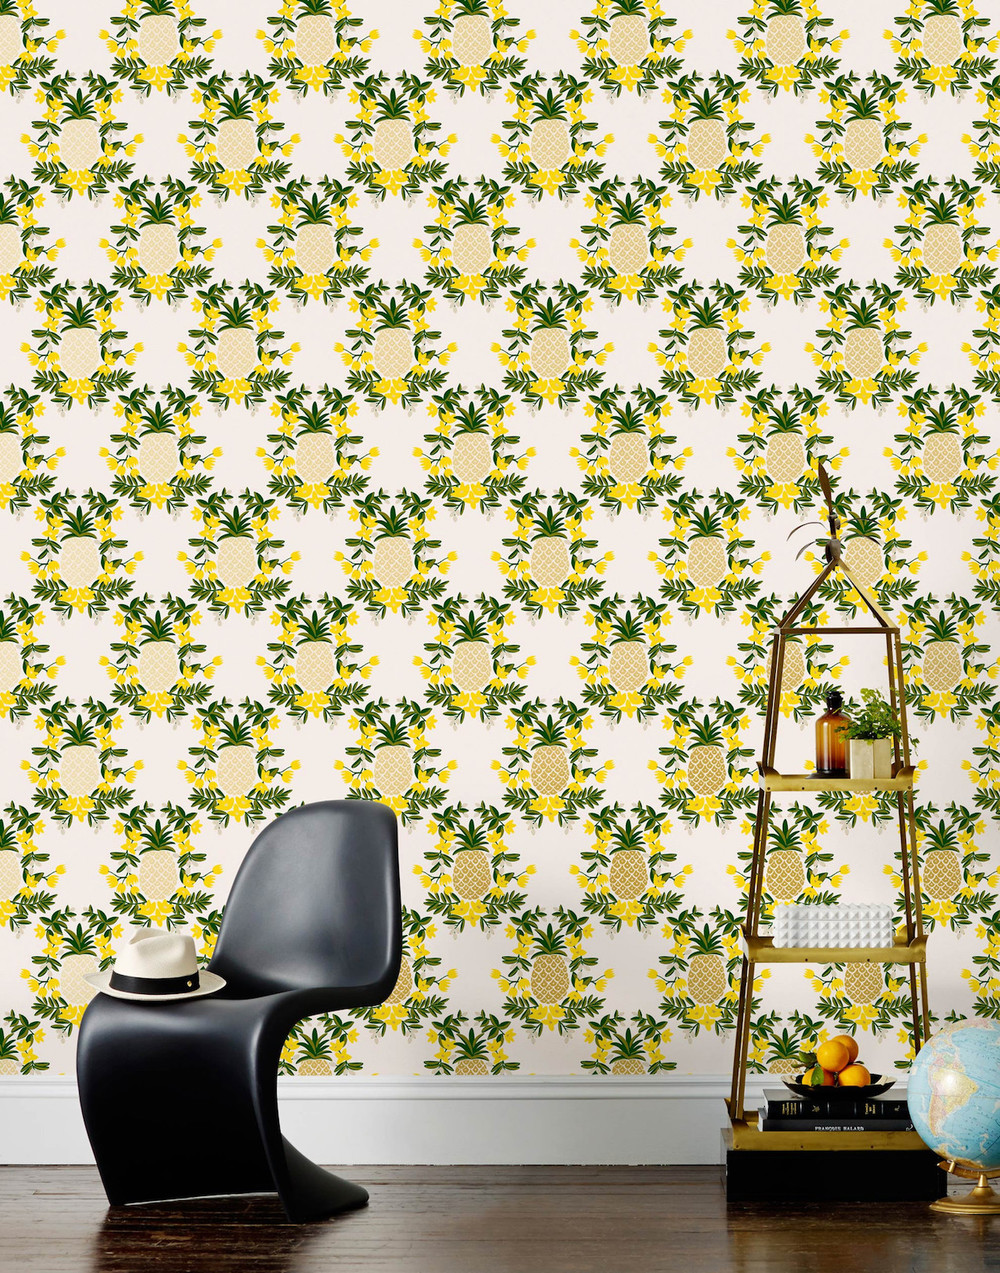 But don't just consider furniture, make over your entire walls with a crazy carnival inspired motif, like this Pineapple (Yellow) wallpaper from Hygge & West.